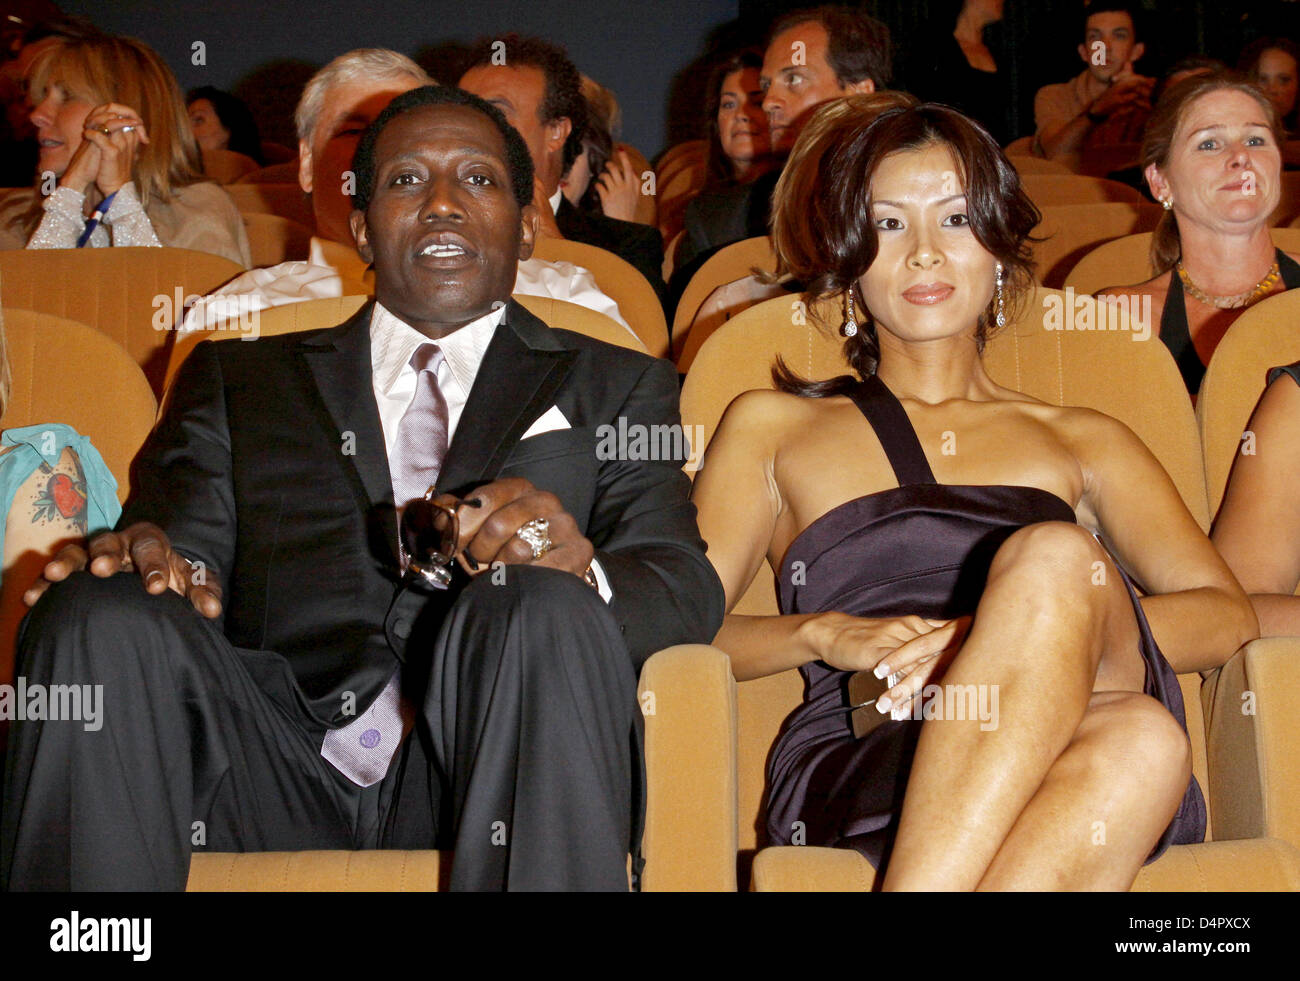 Wesley Snipes And Nikki Park High Resolution Stock Photography And Images Alamy